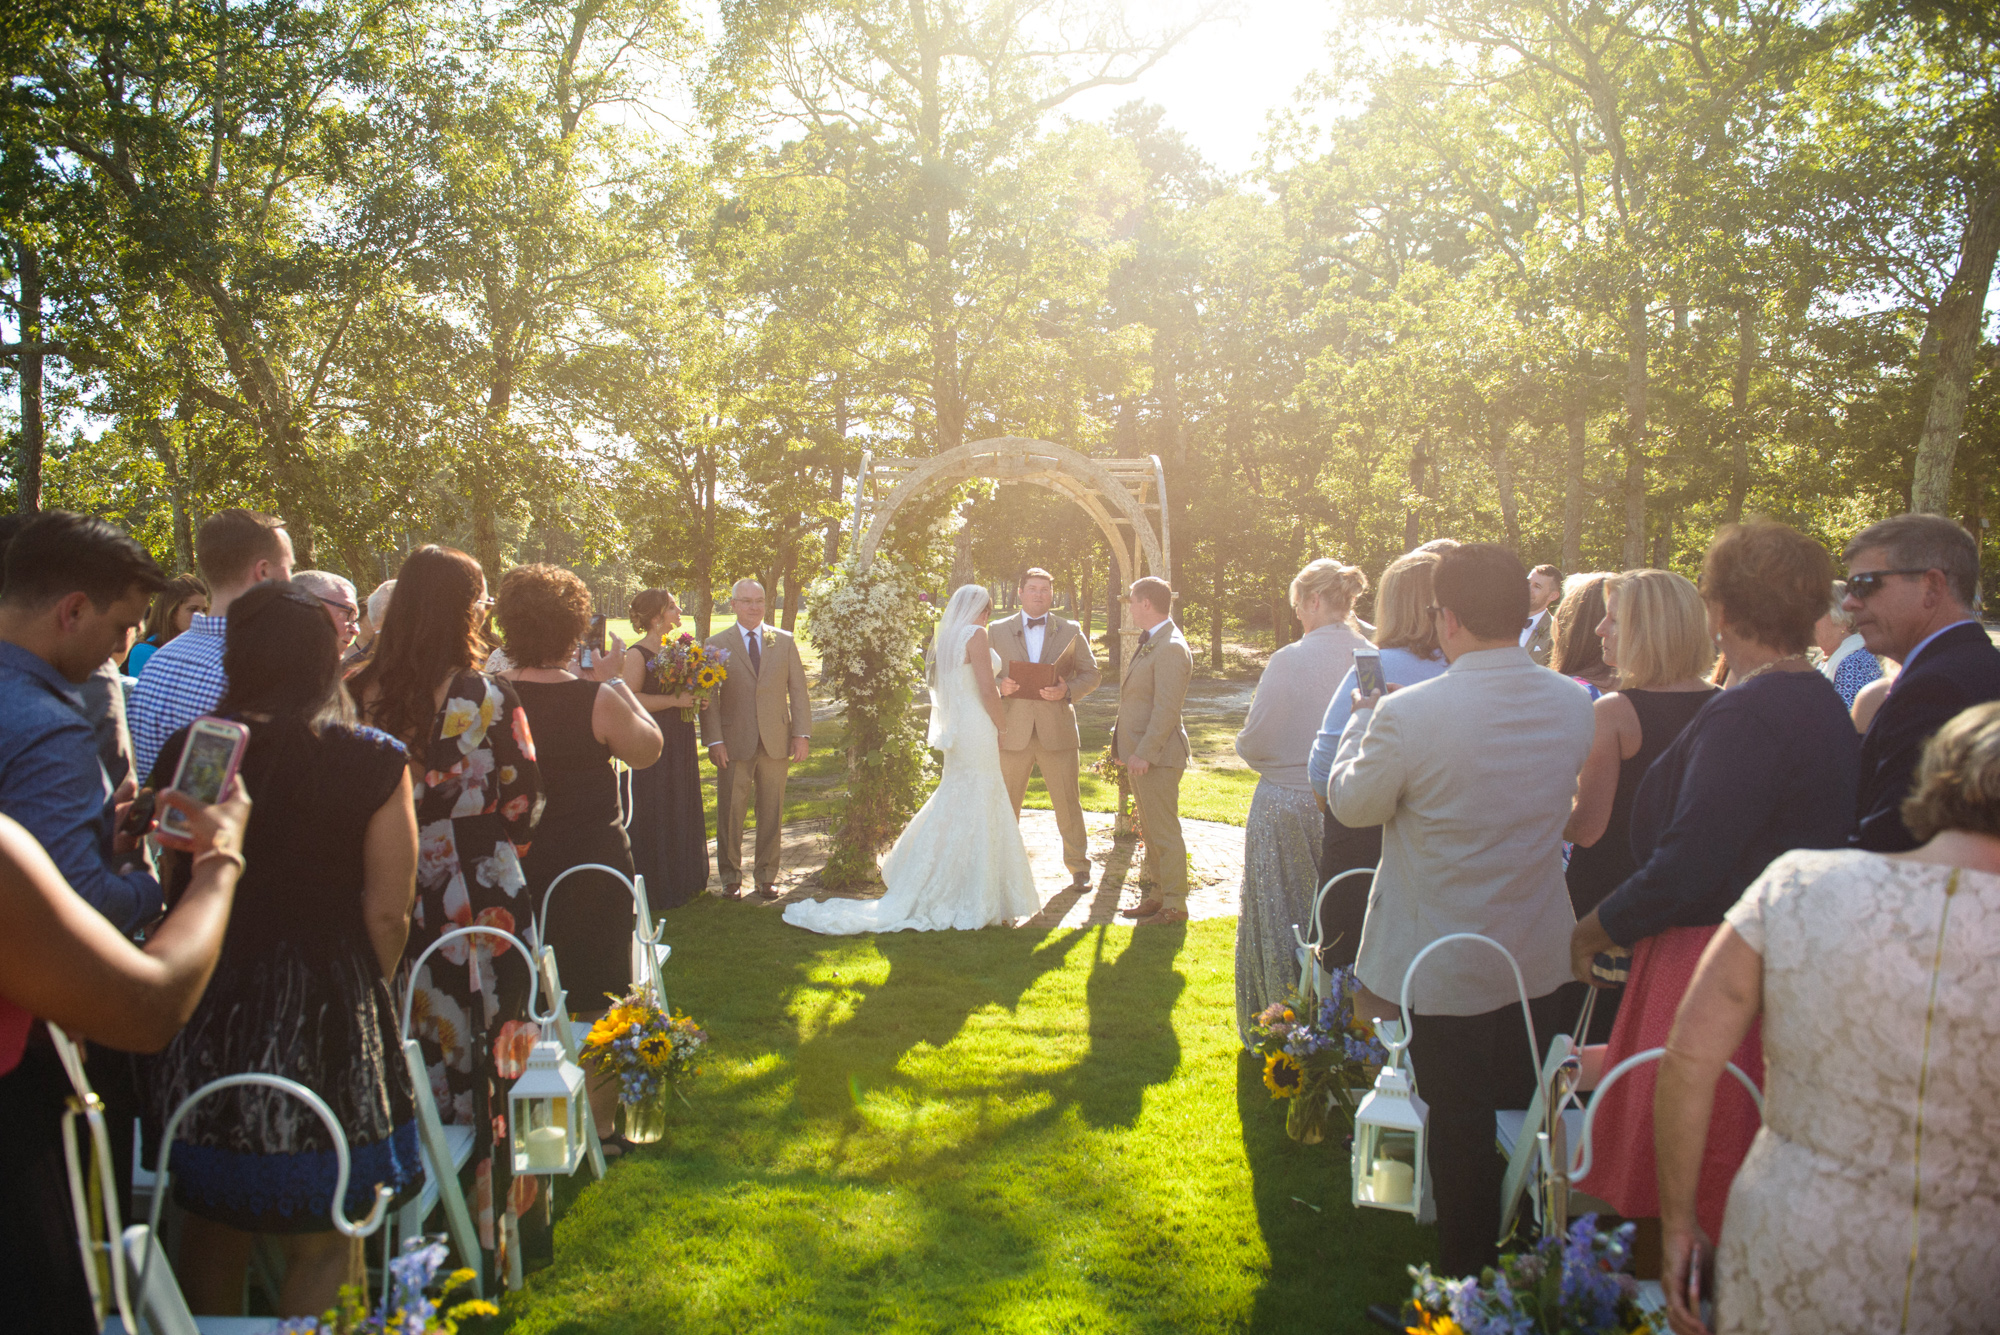 Wedding ceremony on the grounds of Farm Neck Golf Club  photo by David Welch Photography